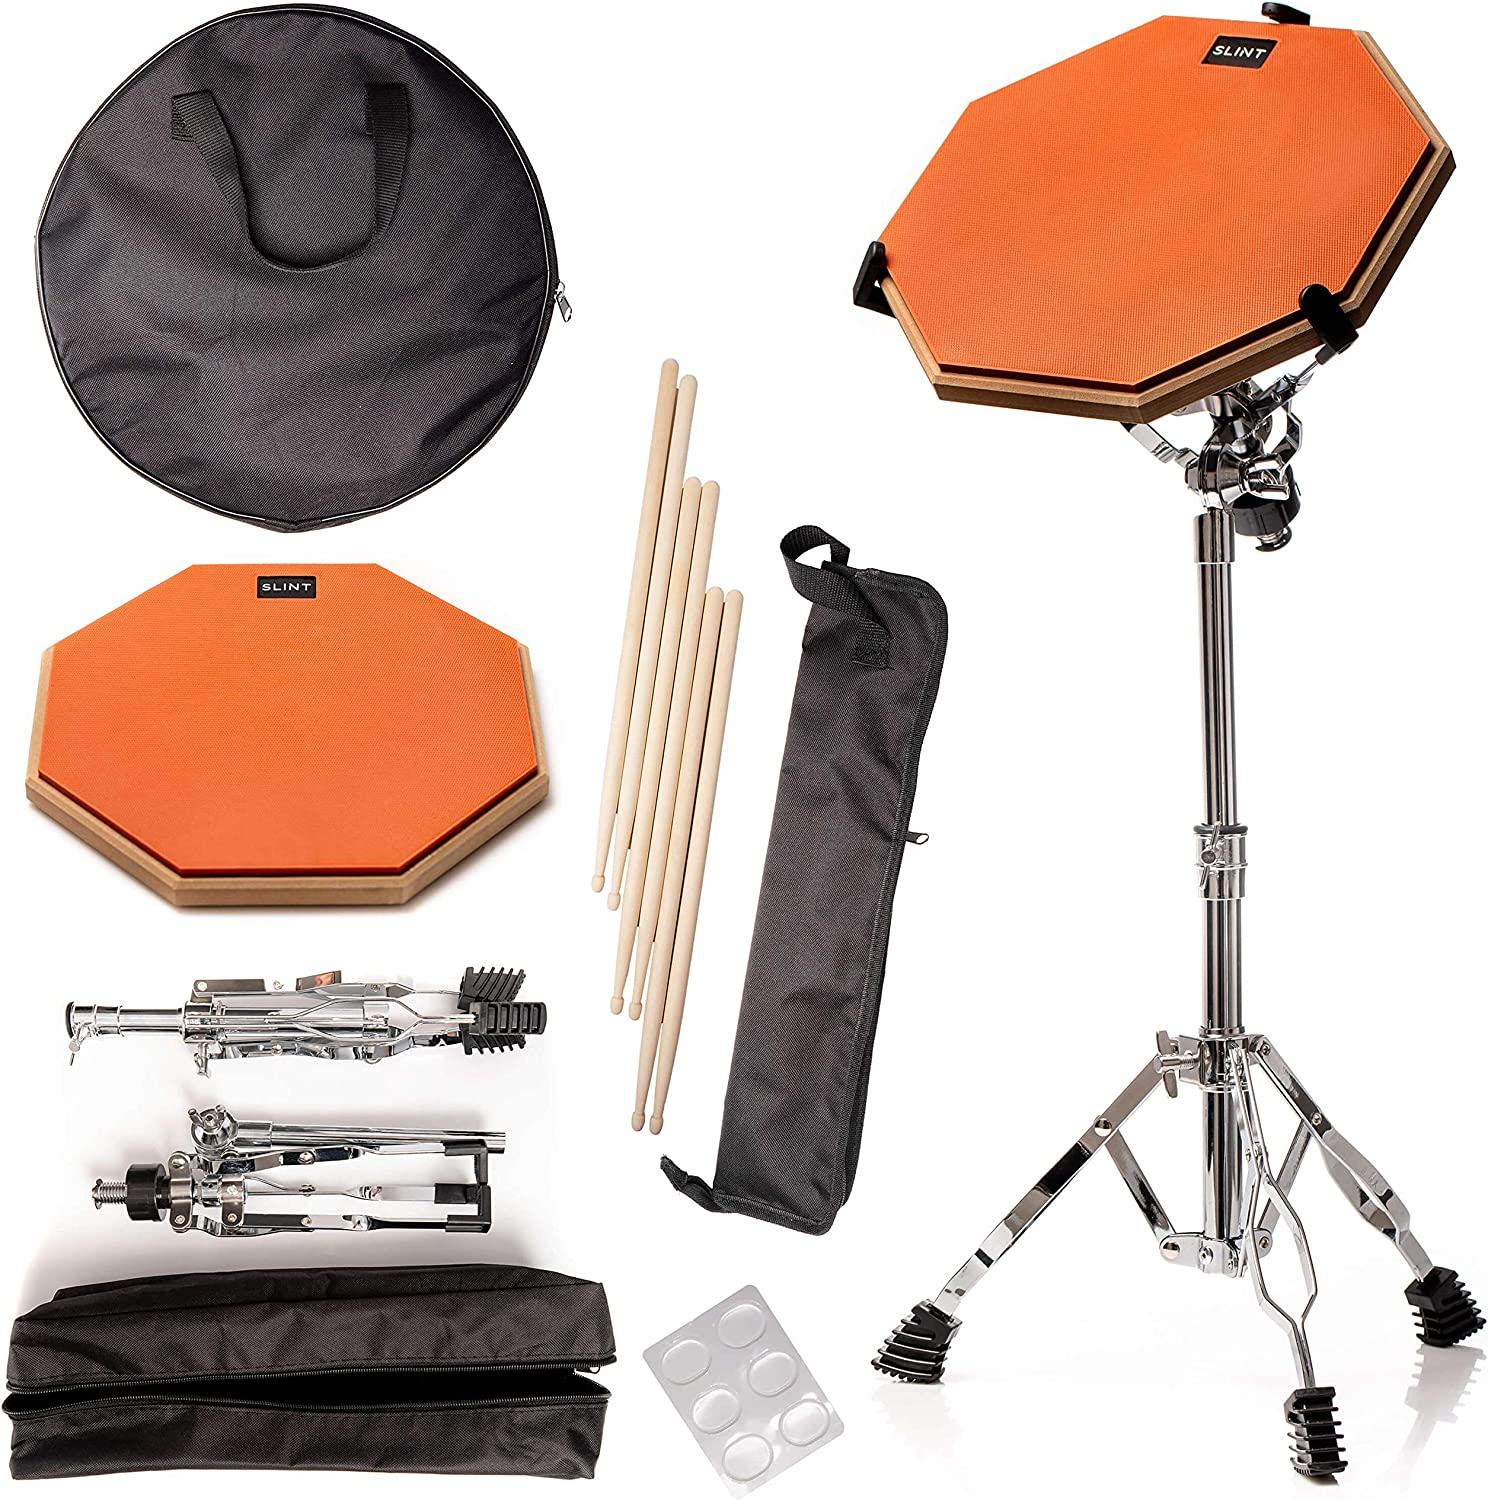 Practice Pad & Snare Stand Bundle - Drum Pad Double Sided with Drumsticks and Drum Stand for Four Inch Snare Drum